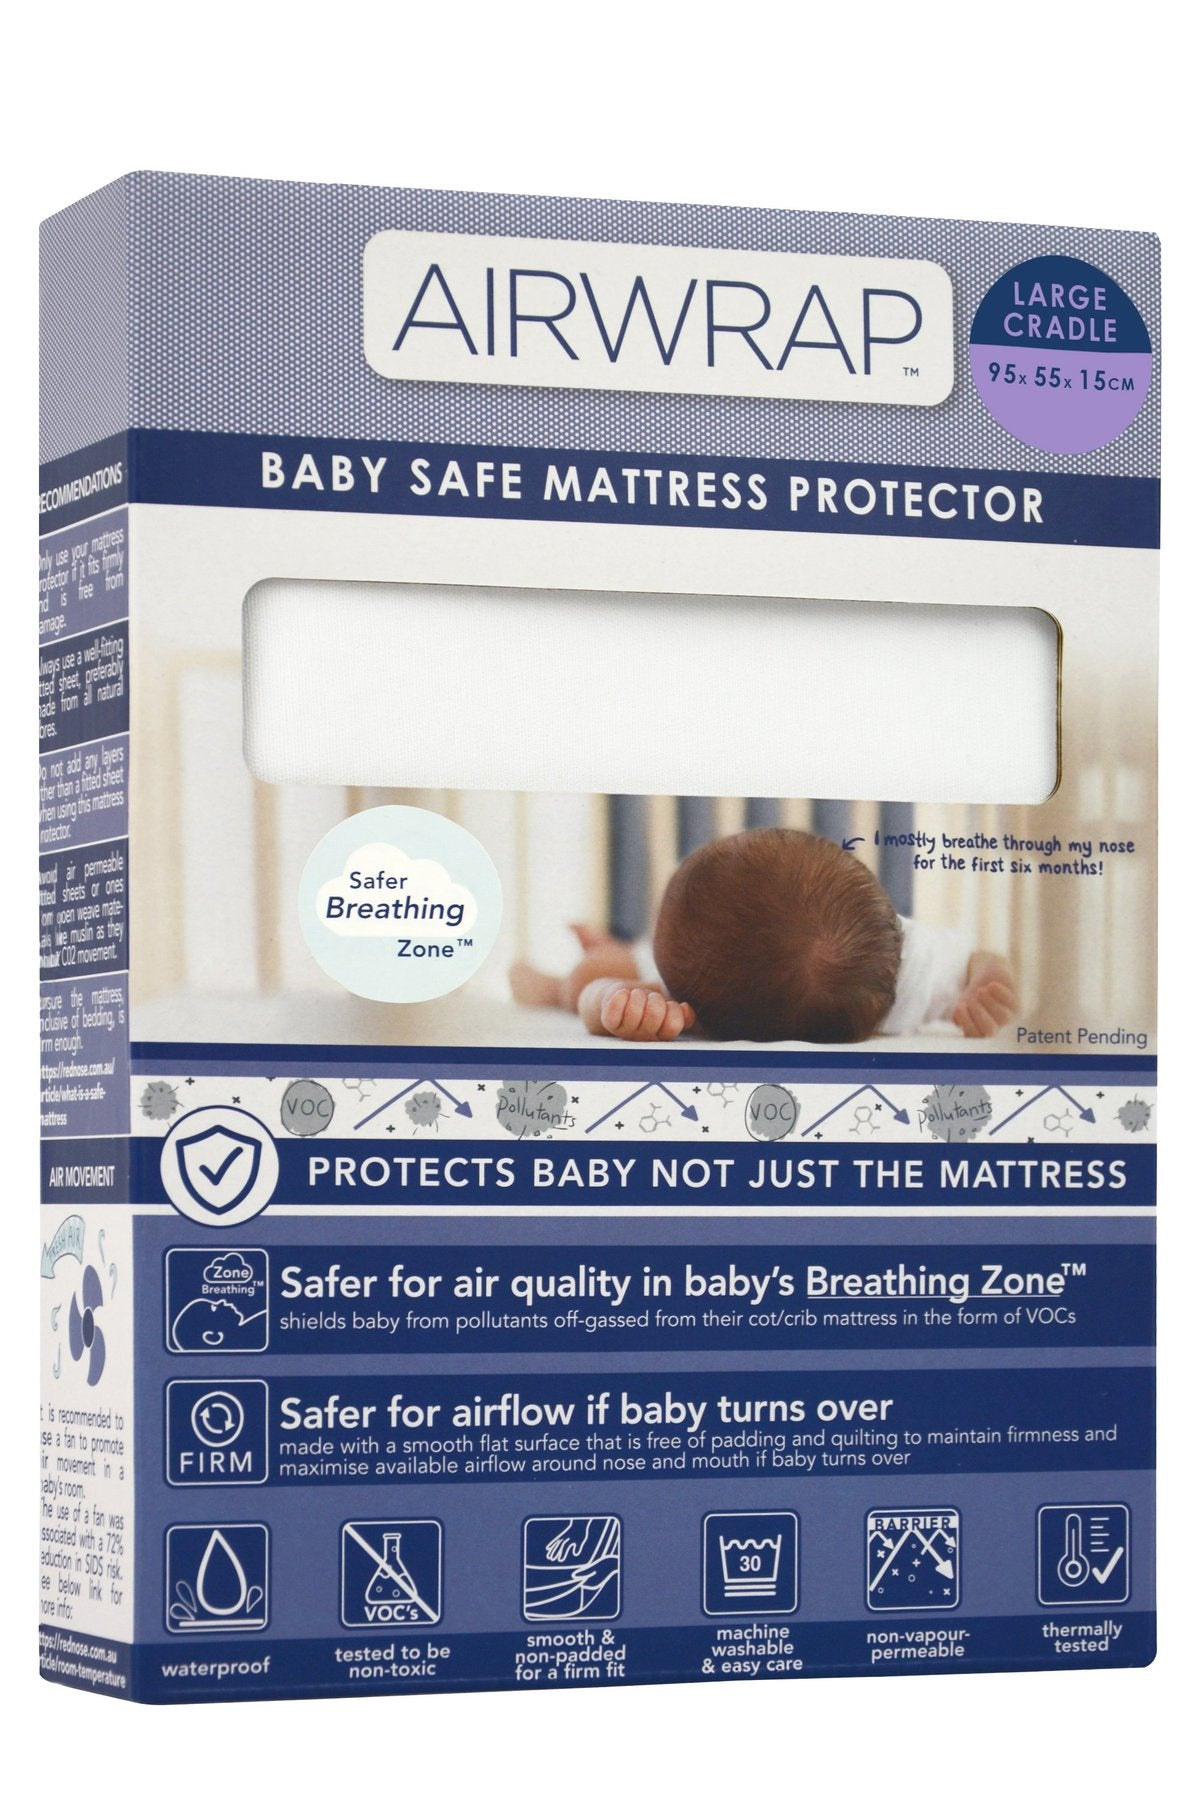 Airwrap Mattress Protector Large Cradle